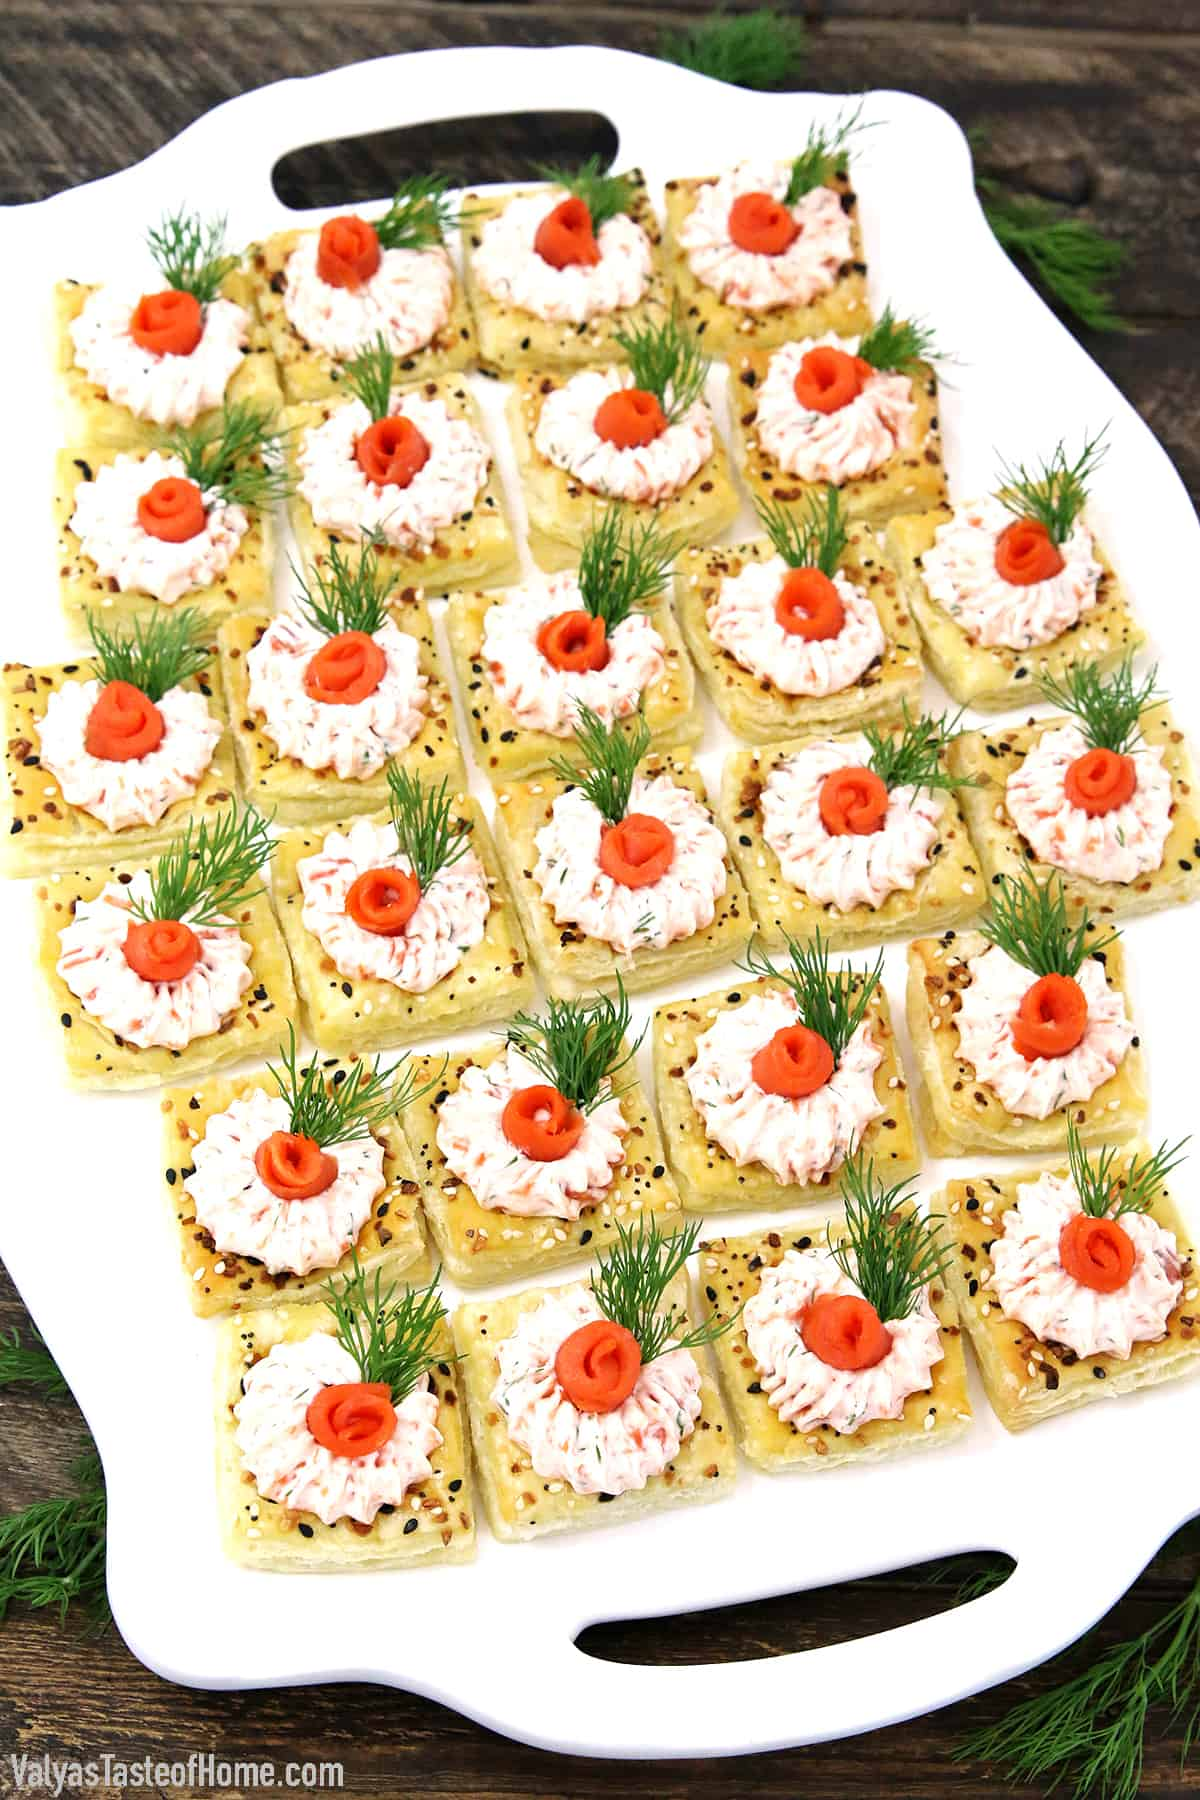 We are so used to sweet pastry treats, but did you know that savory pastry treats are just as delicious and popular? Today's recipe is  Easy Smoked Salmon Cream Cheese Pastry Appetizers, and my goodness are they delicious!